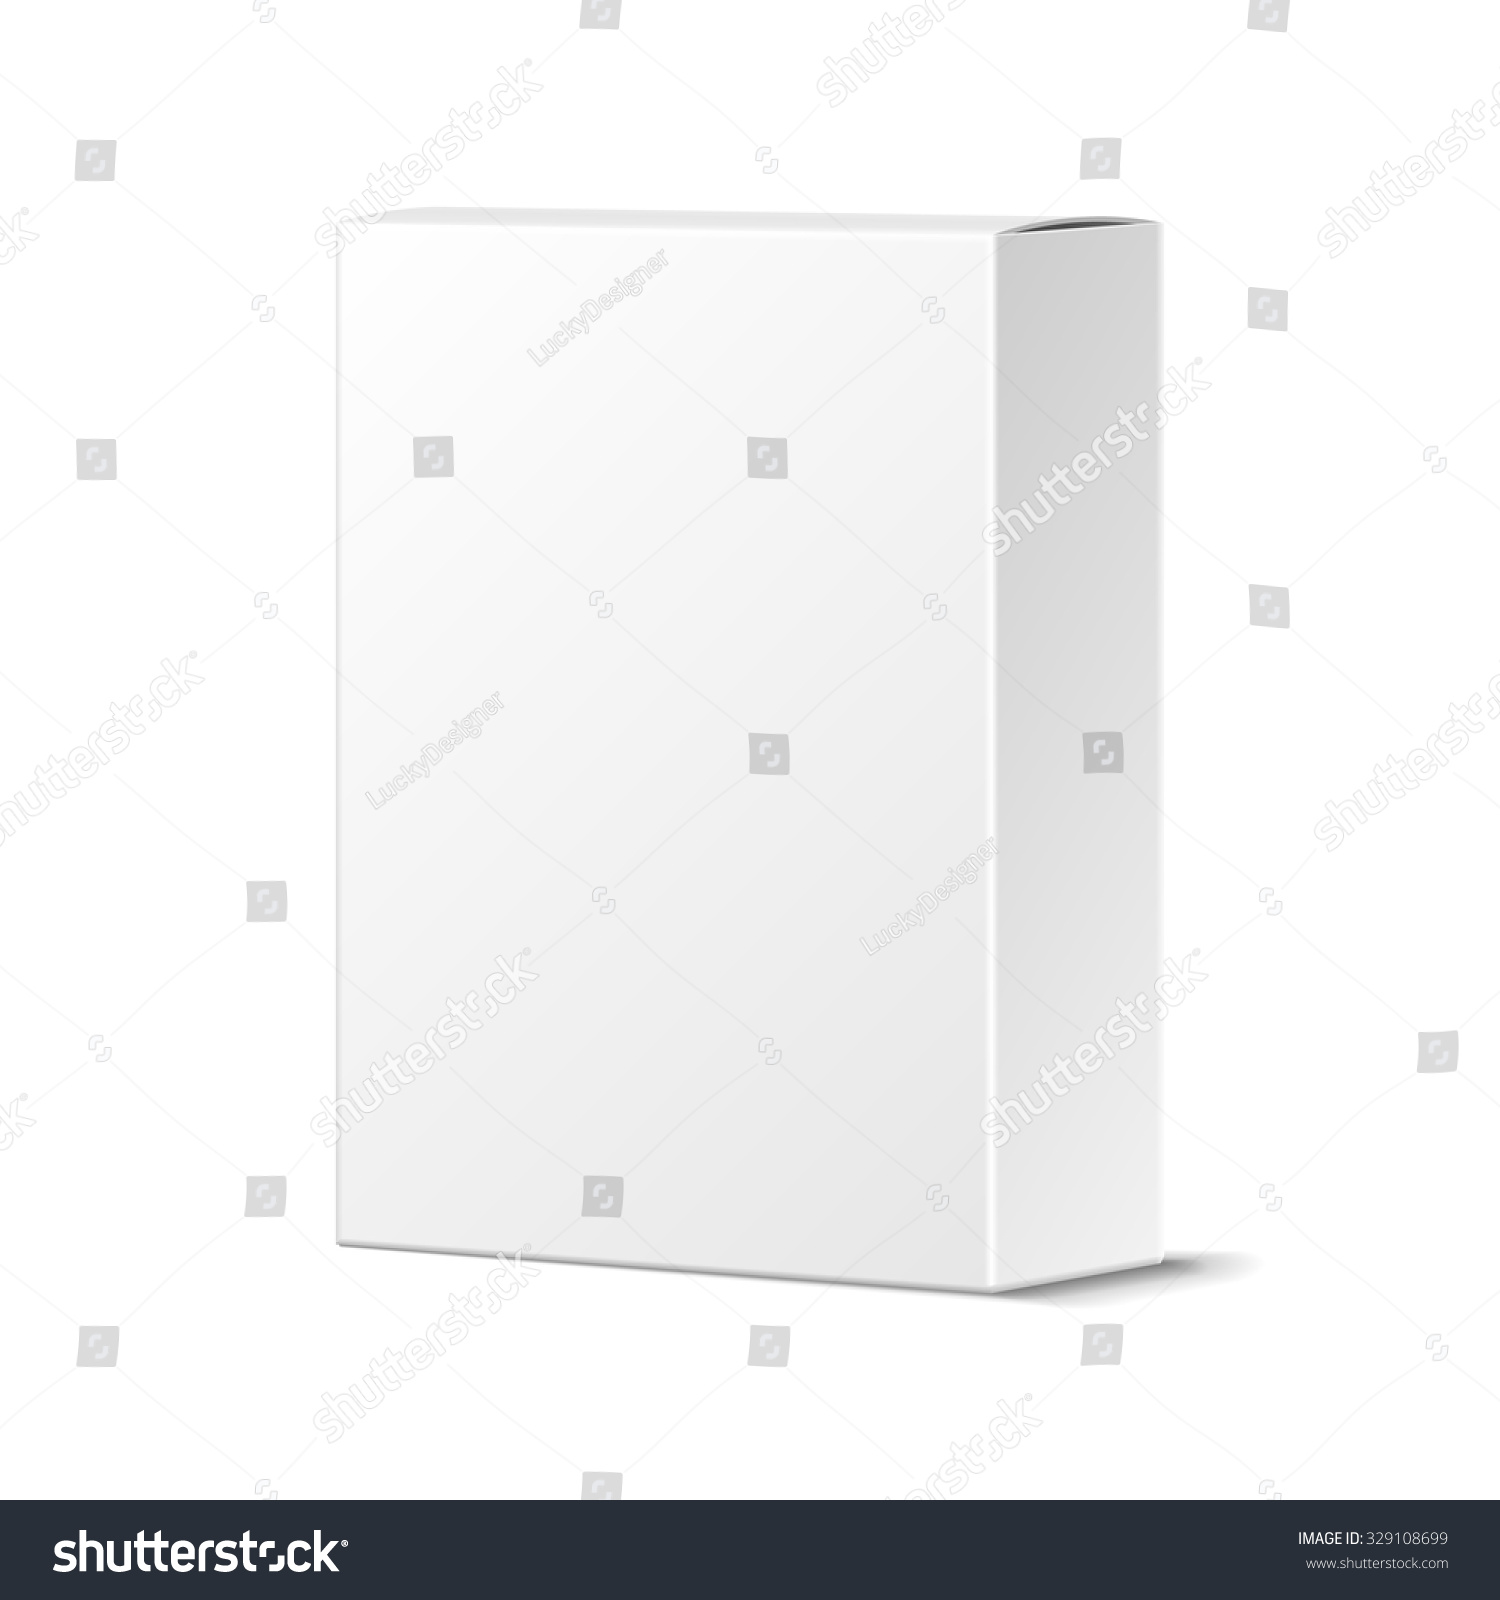 Logo Mockup White Paper In Shadow: Realistic Blank White Product Package Box Stock Vector